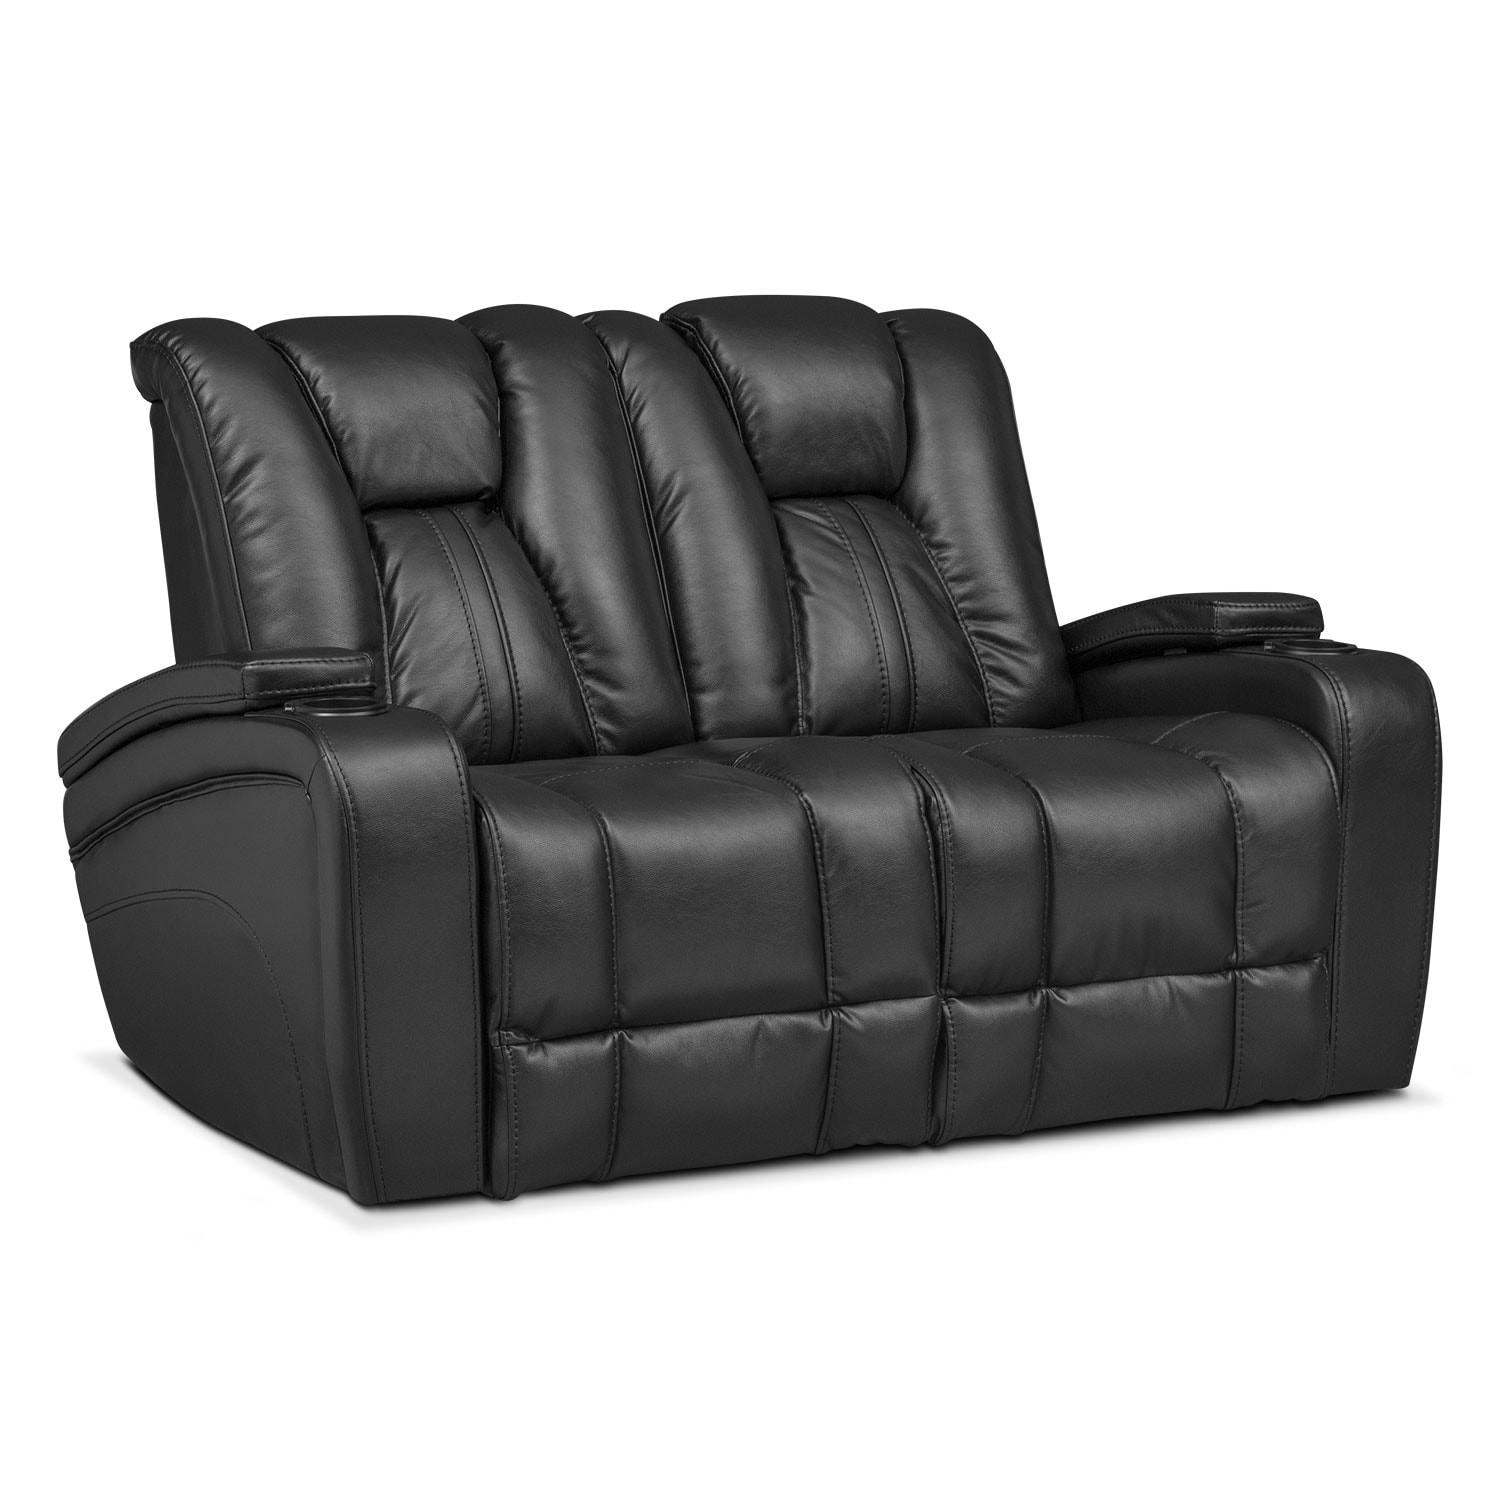 Pulsar Power Reclining Sofa, Power Reclining Loveseat And Power Recliner  Set - Black By One80